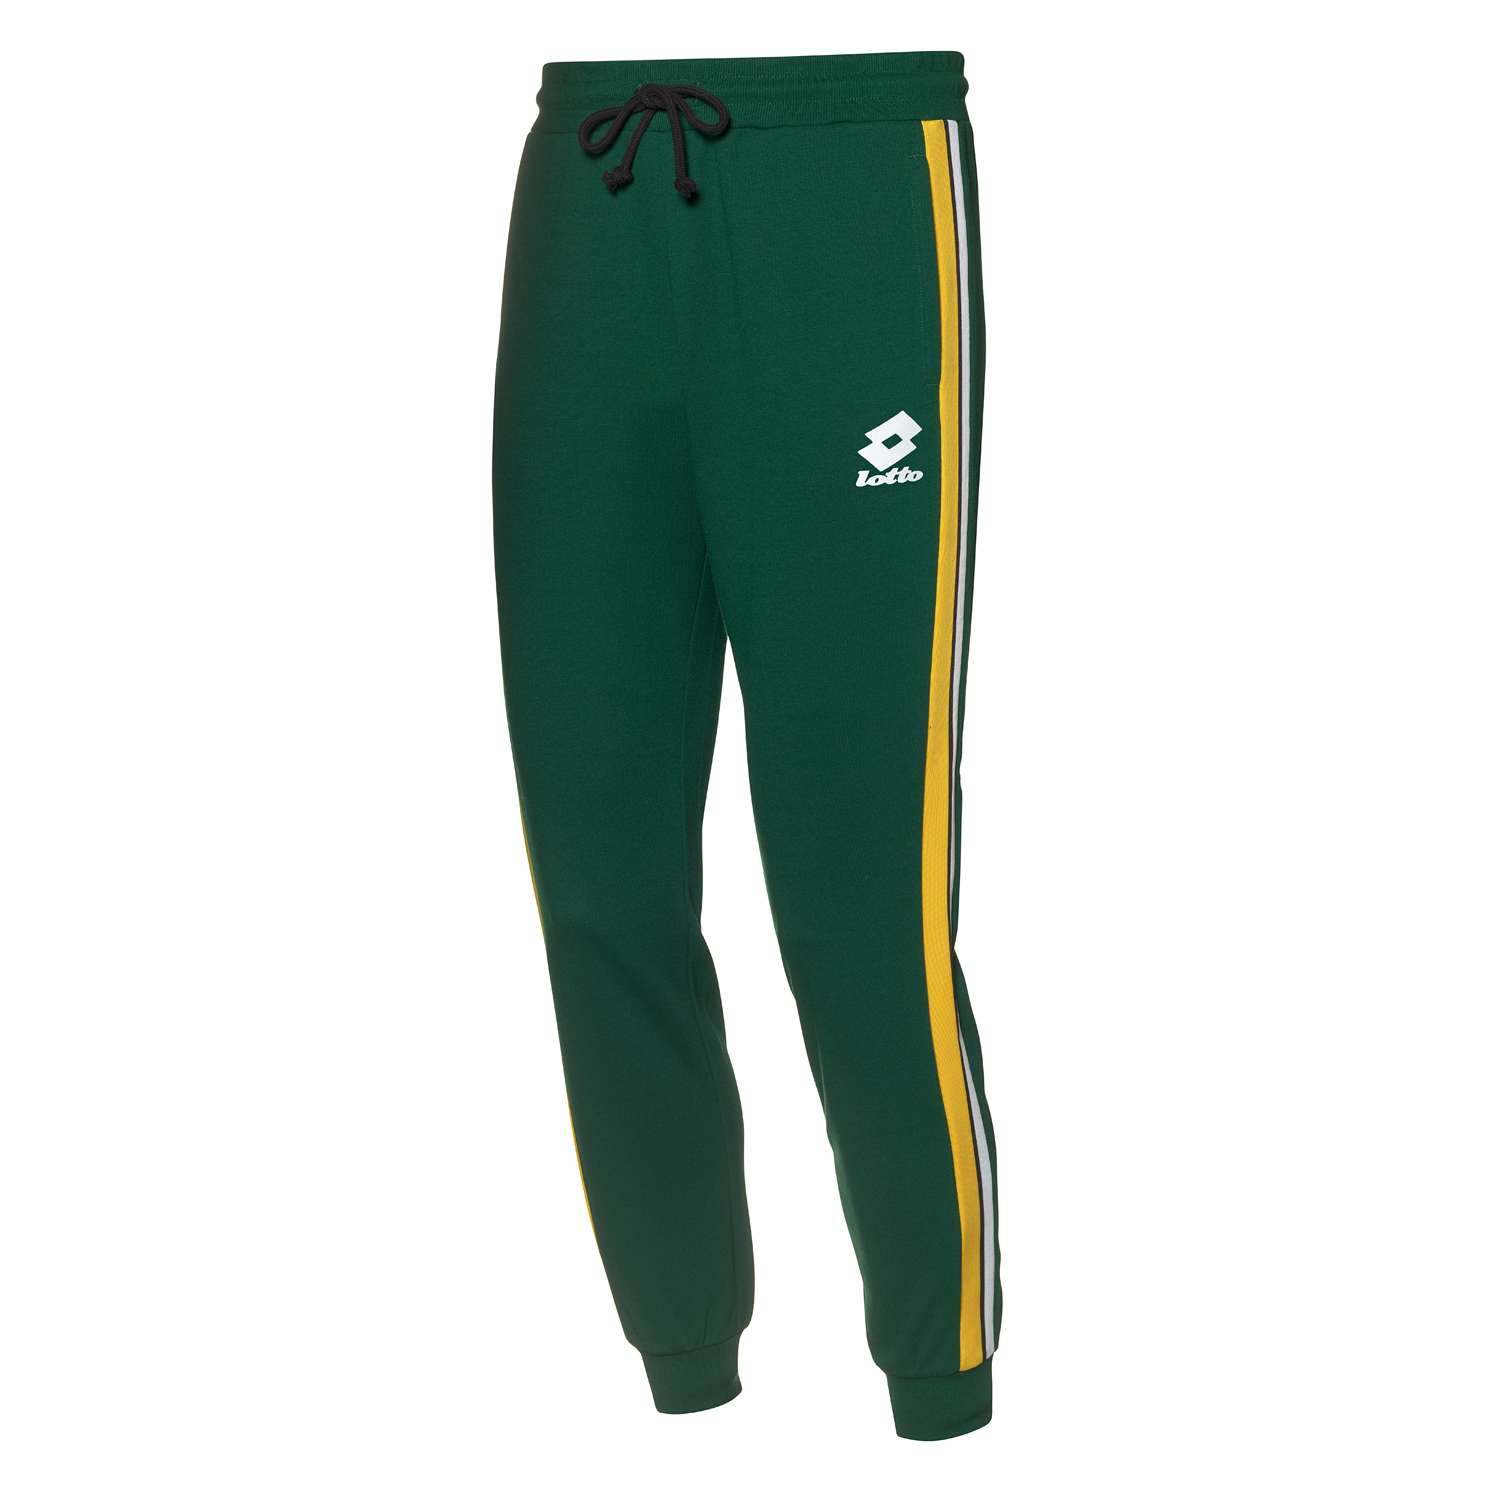 Lotto Sport Italia - Footwear, clothing and accessories for